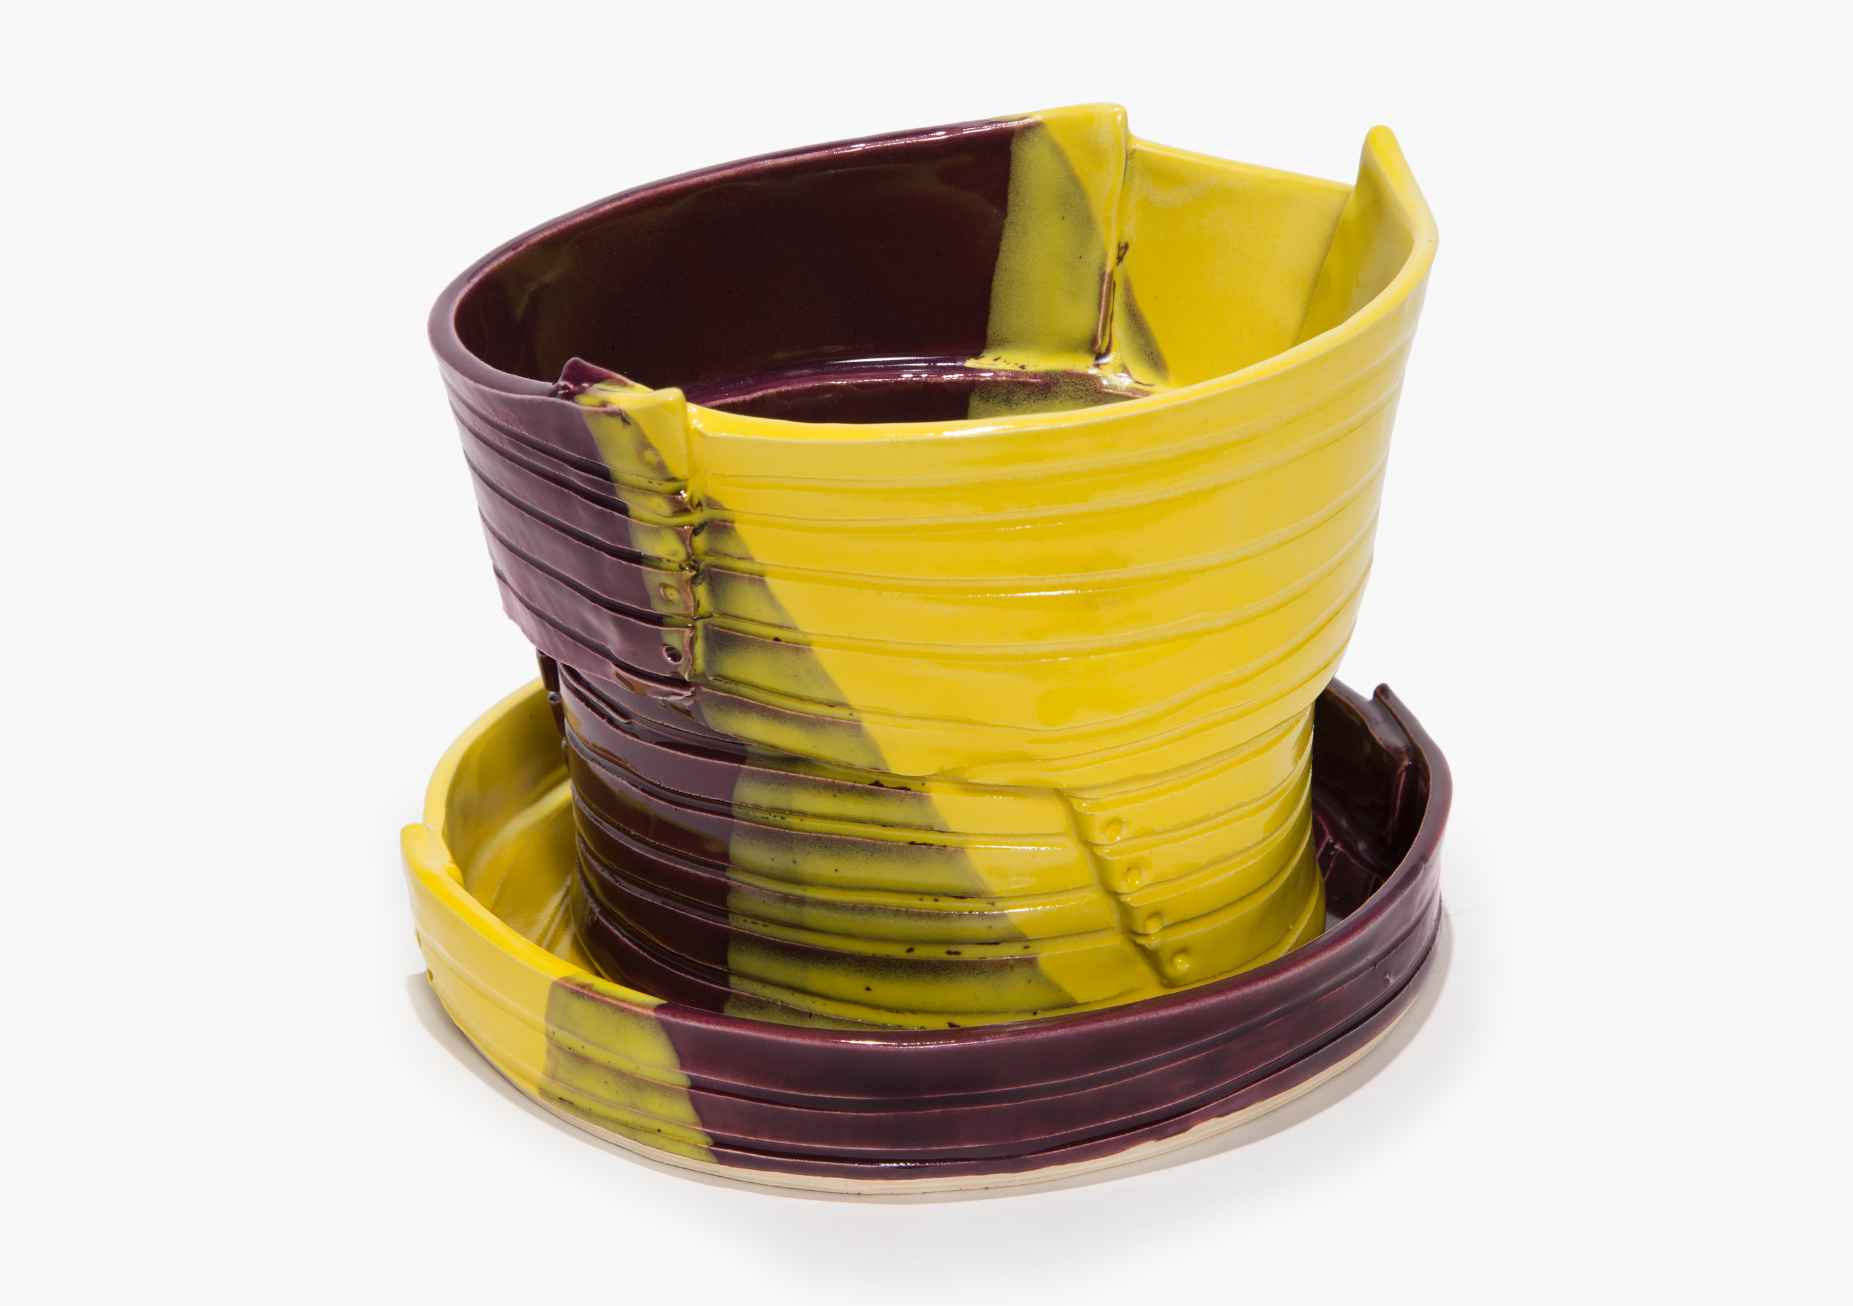 Plant Pot with Drainage Holes and Detachable Tray in Yellow and Plum